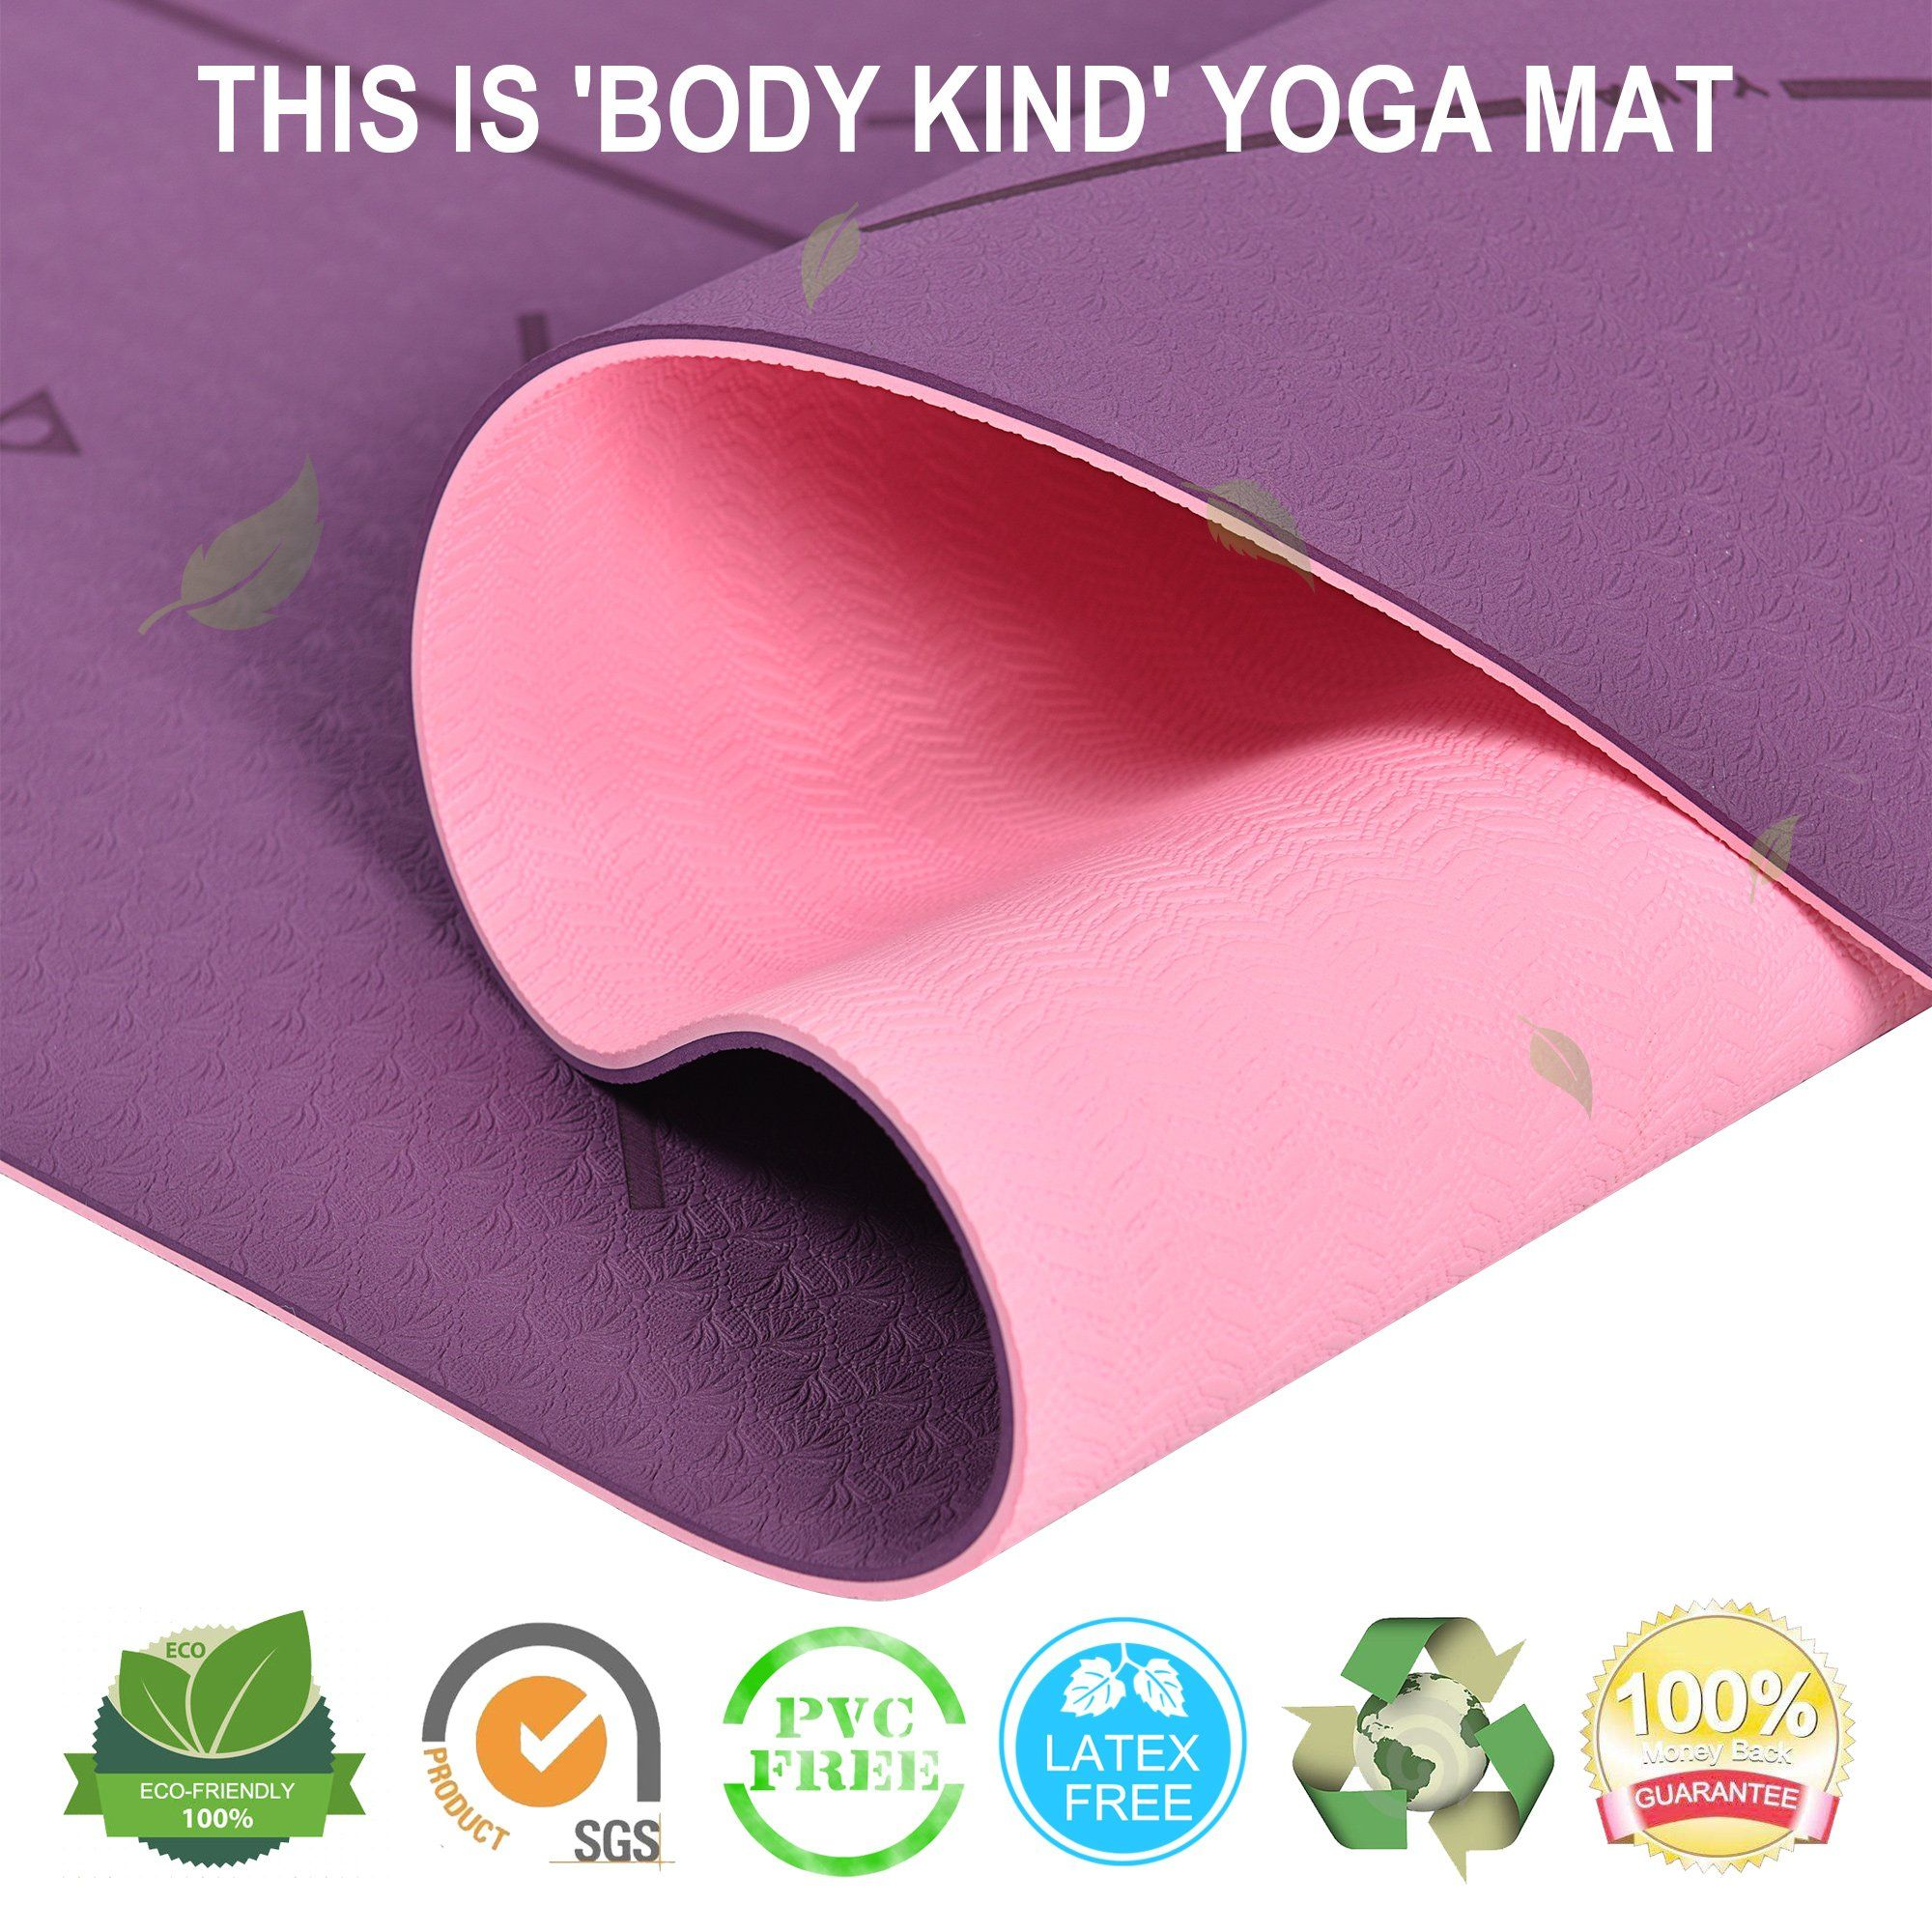 15+ Wide thick yoga mat ideas in 2021